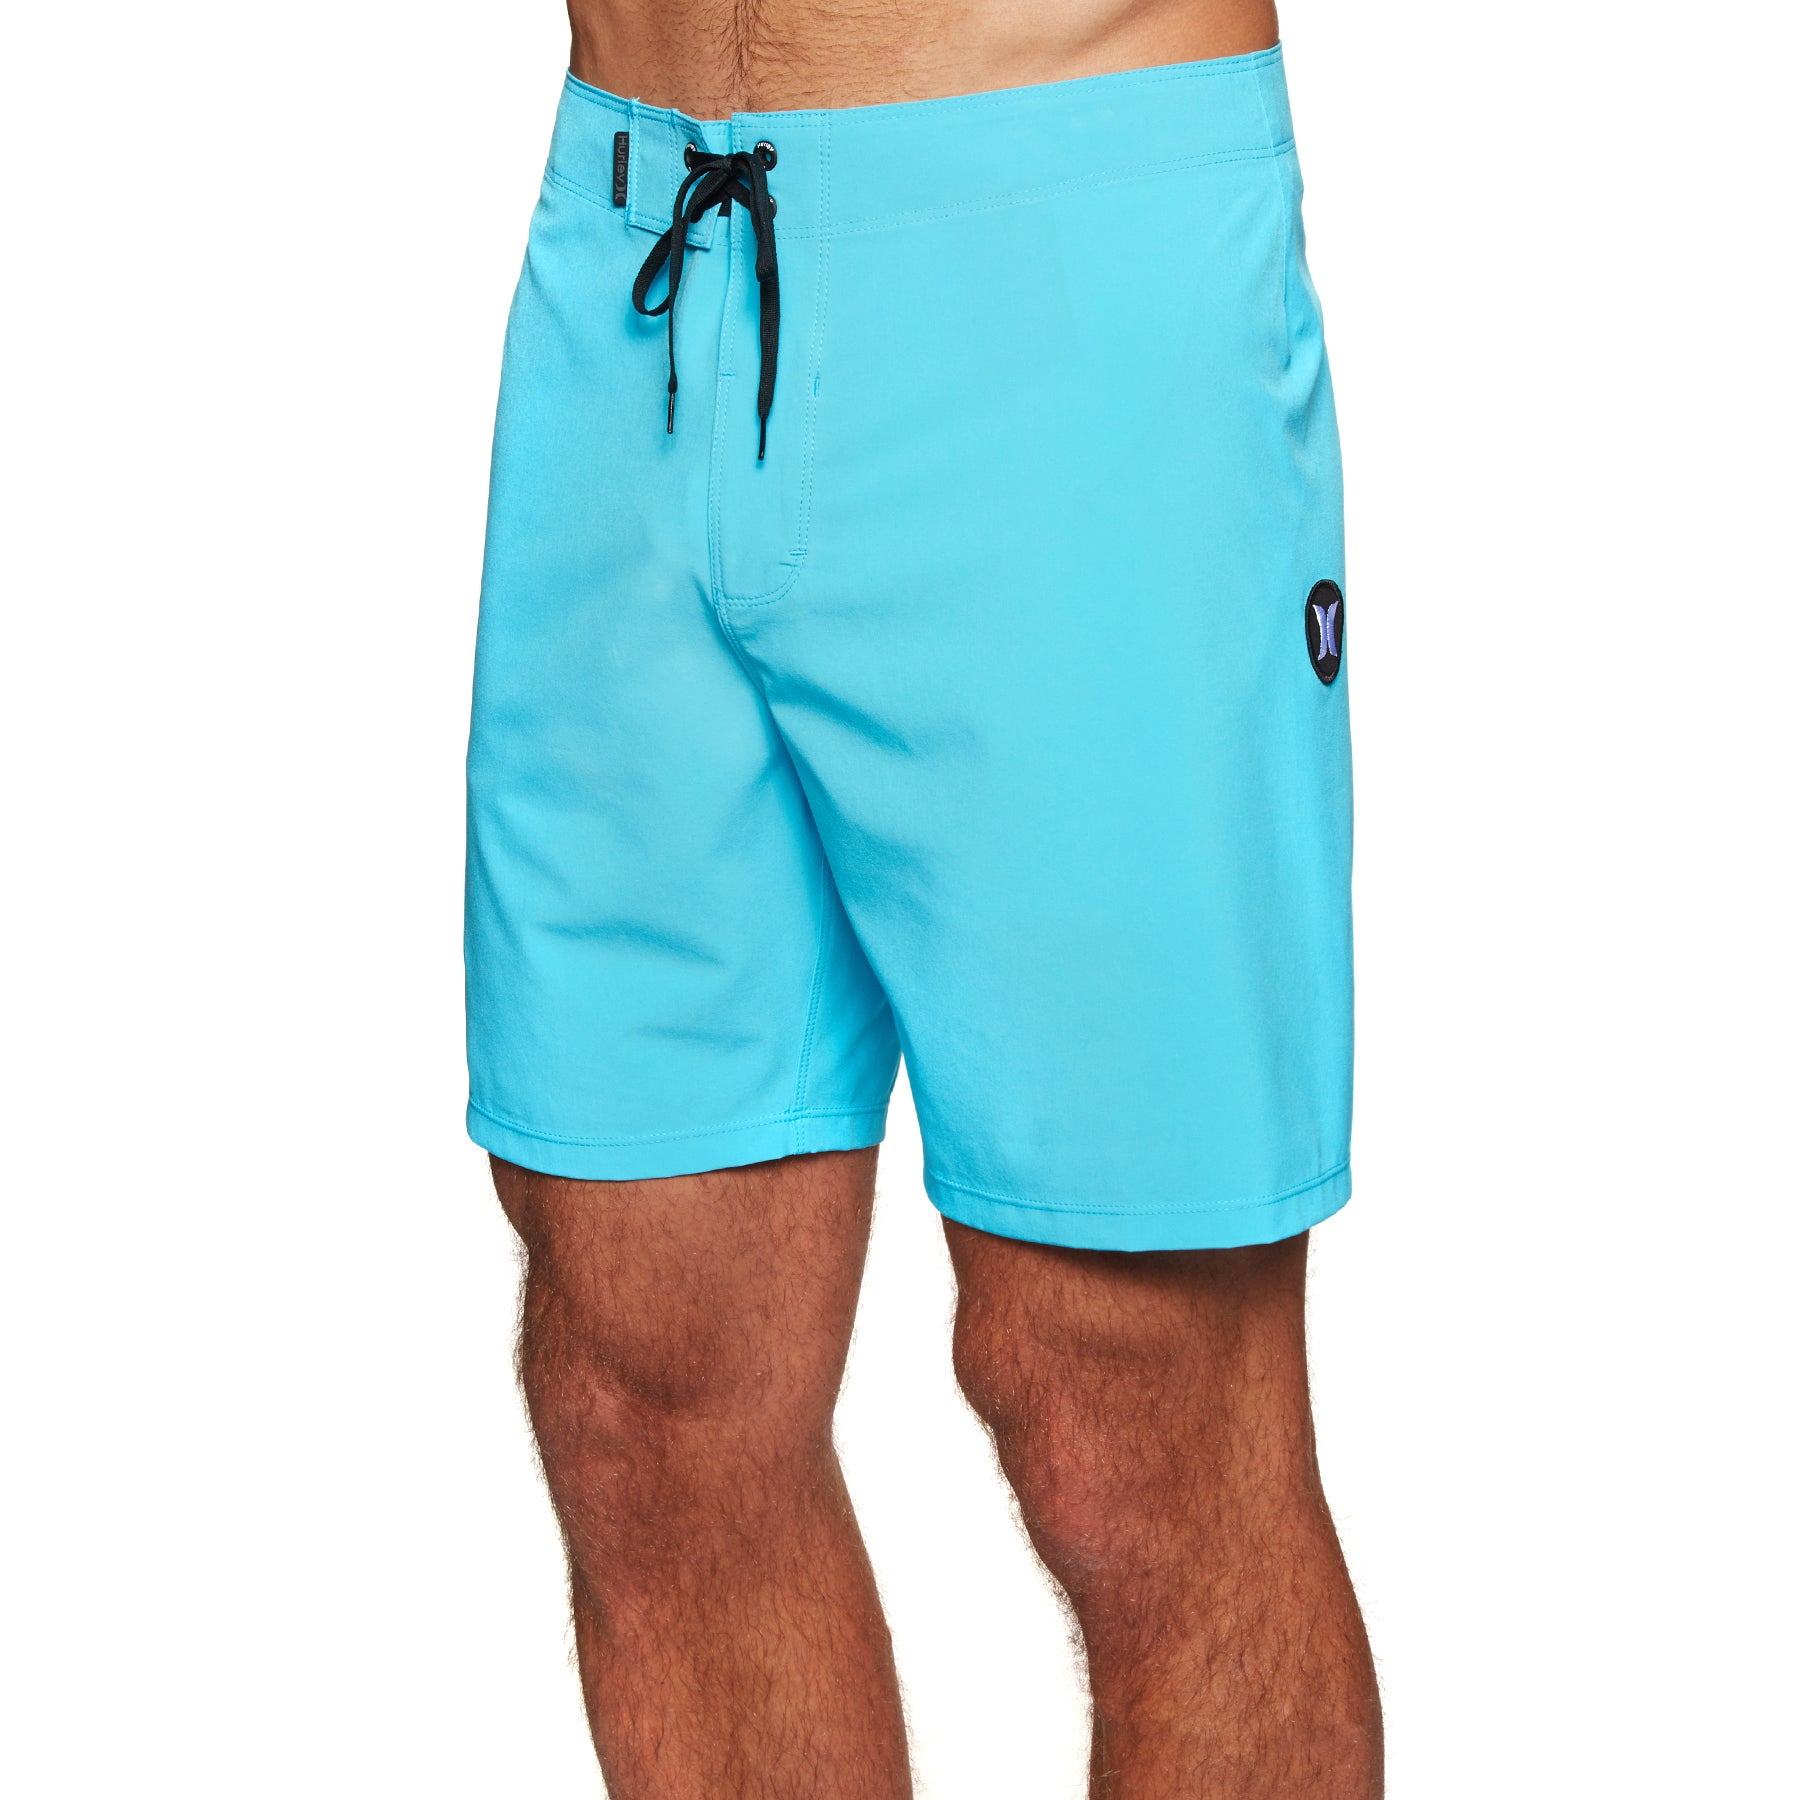 Surfdome Board Mens Delivery ShortsFree At Available TlcKu15FJ3